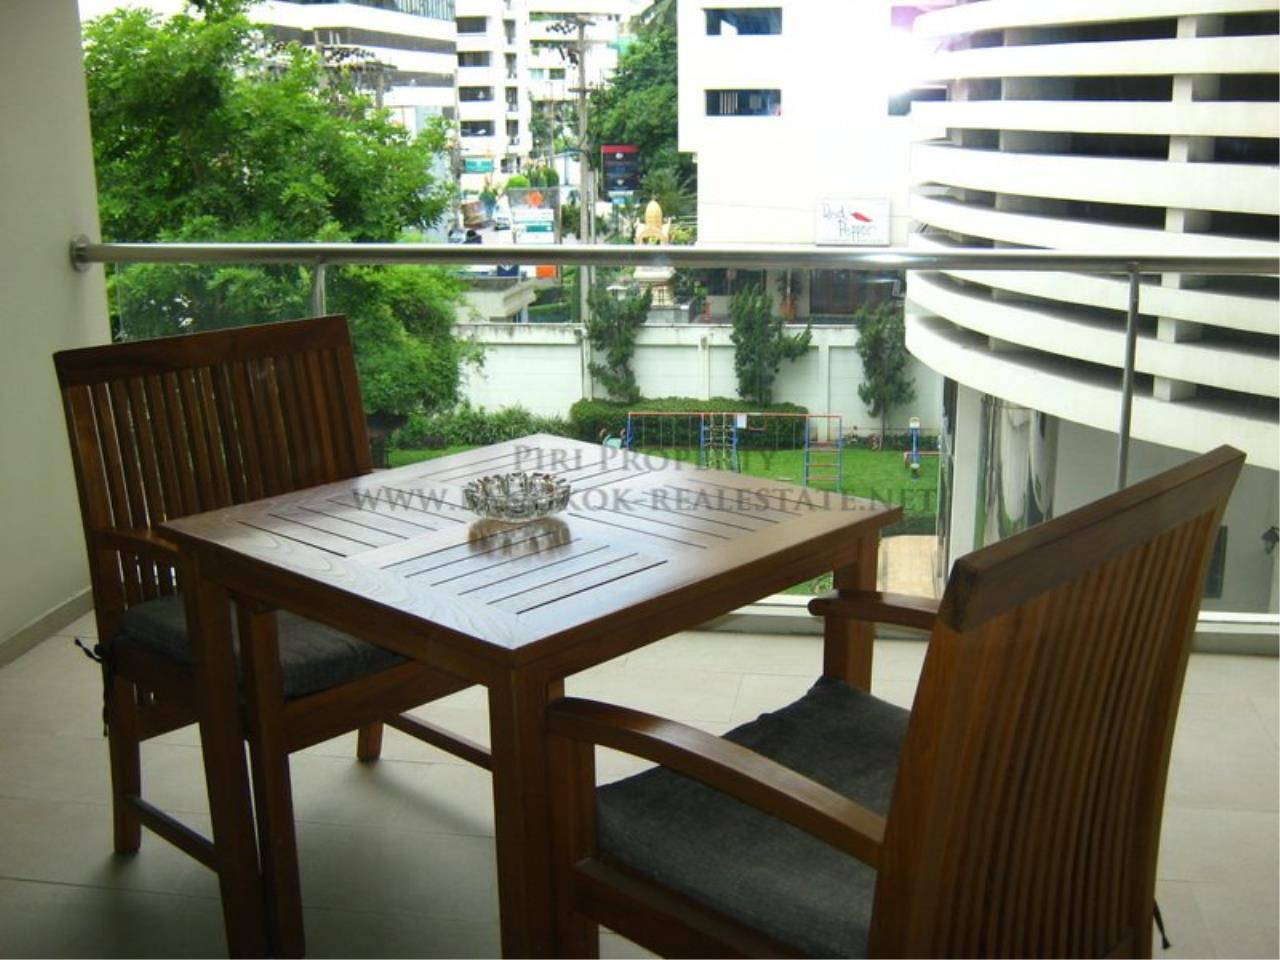 Piri Property Agency's Spacious 3 Bedroom near Asoke on Sukhumvit Soi 20 - 200 SQM 14